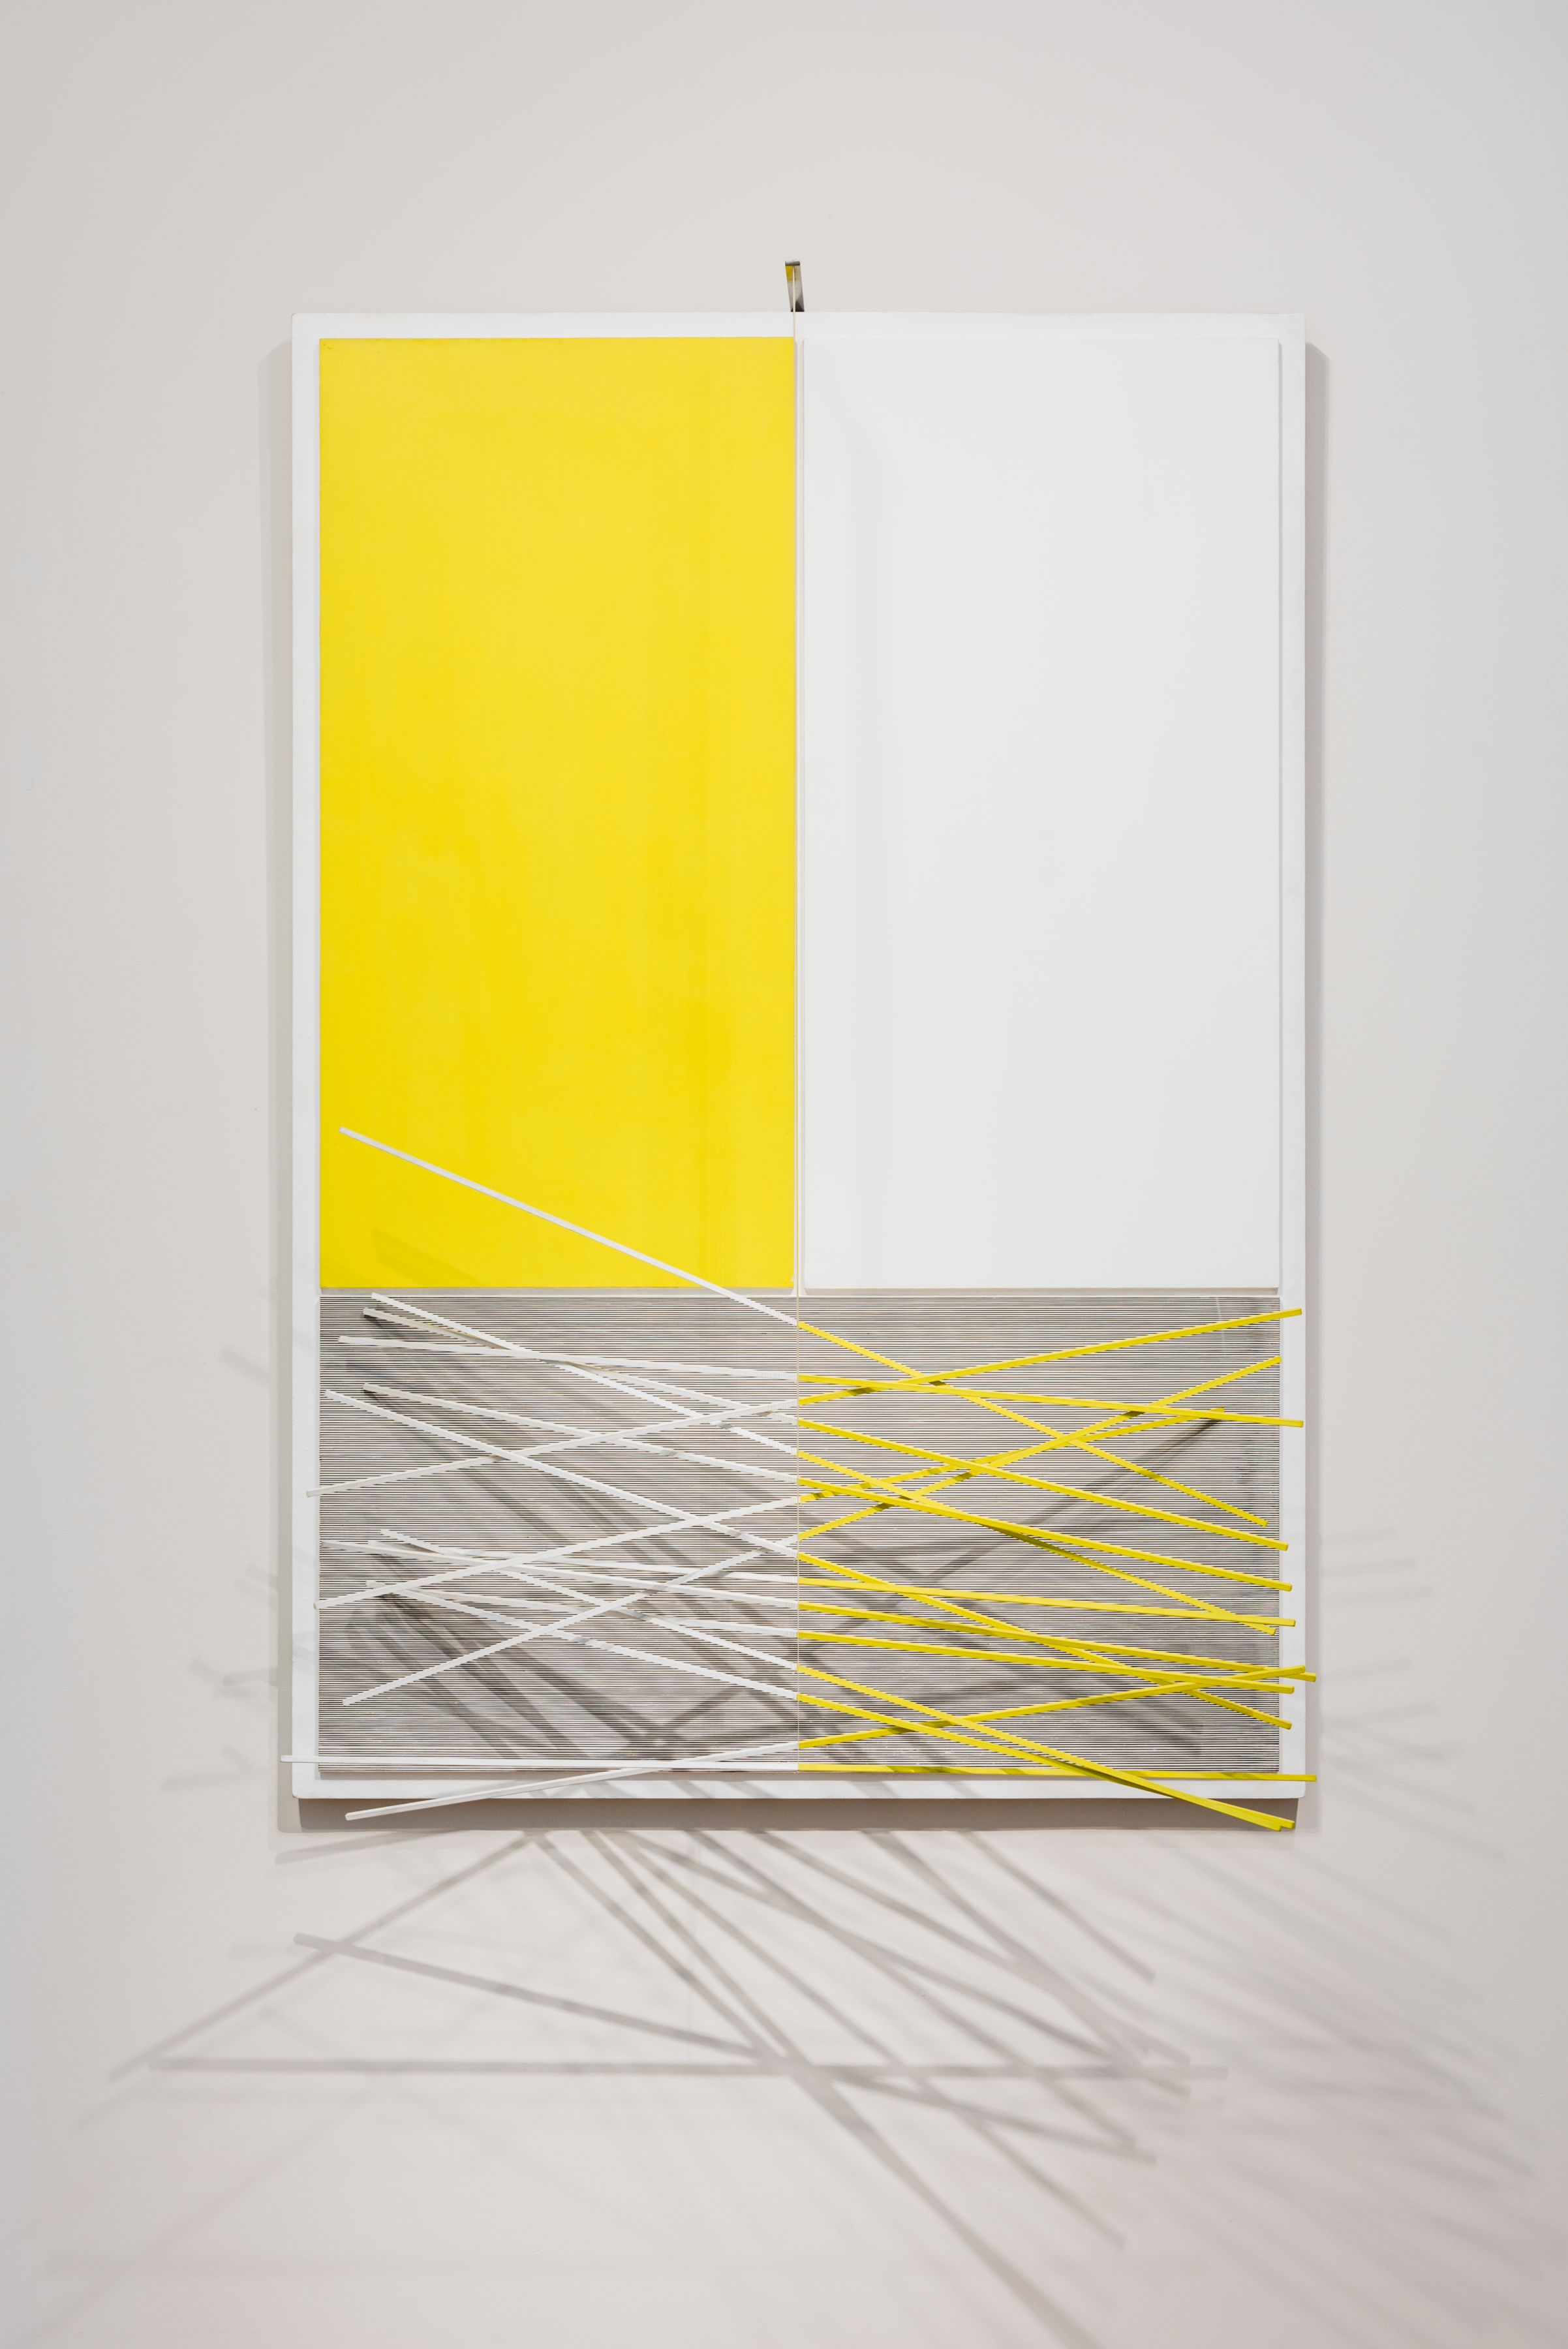 Jesús Rafael Soto,Barres et Rectangles Jaunes et Blancs, 1965,Acrylic on board with aluminum rods and nylon wire,62 x 42 1/2 x 23 in. (157.5 x 108 x 58.5 cm.)